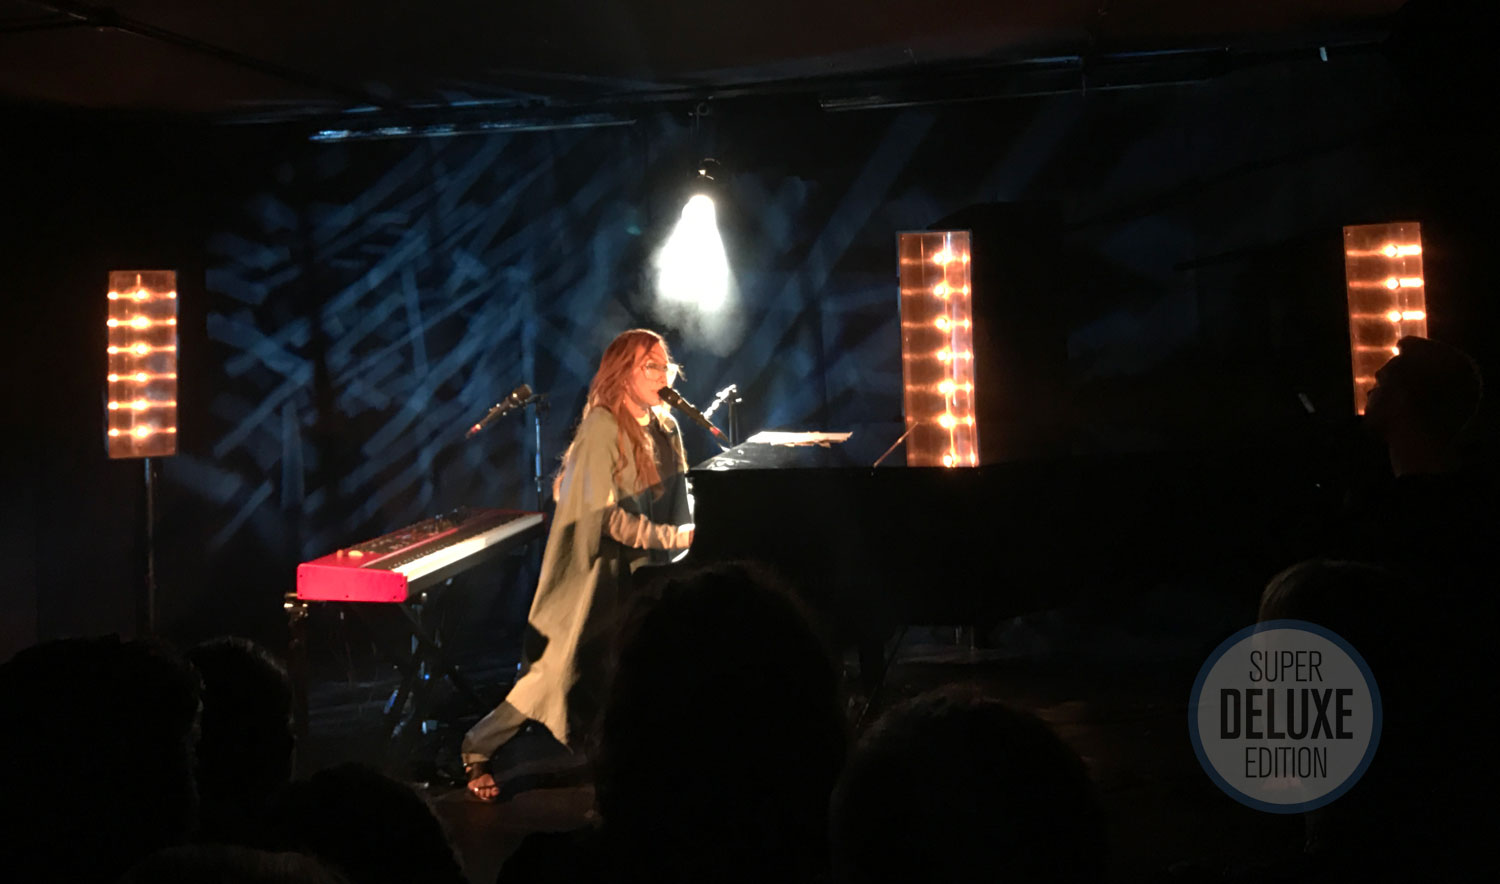 Tori Amos plays at the Native Invader album launch